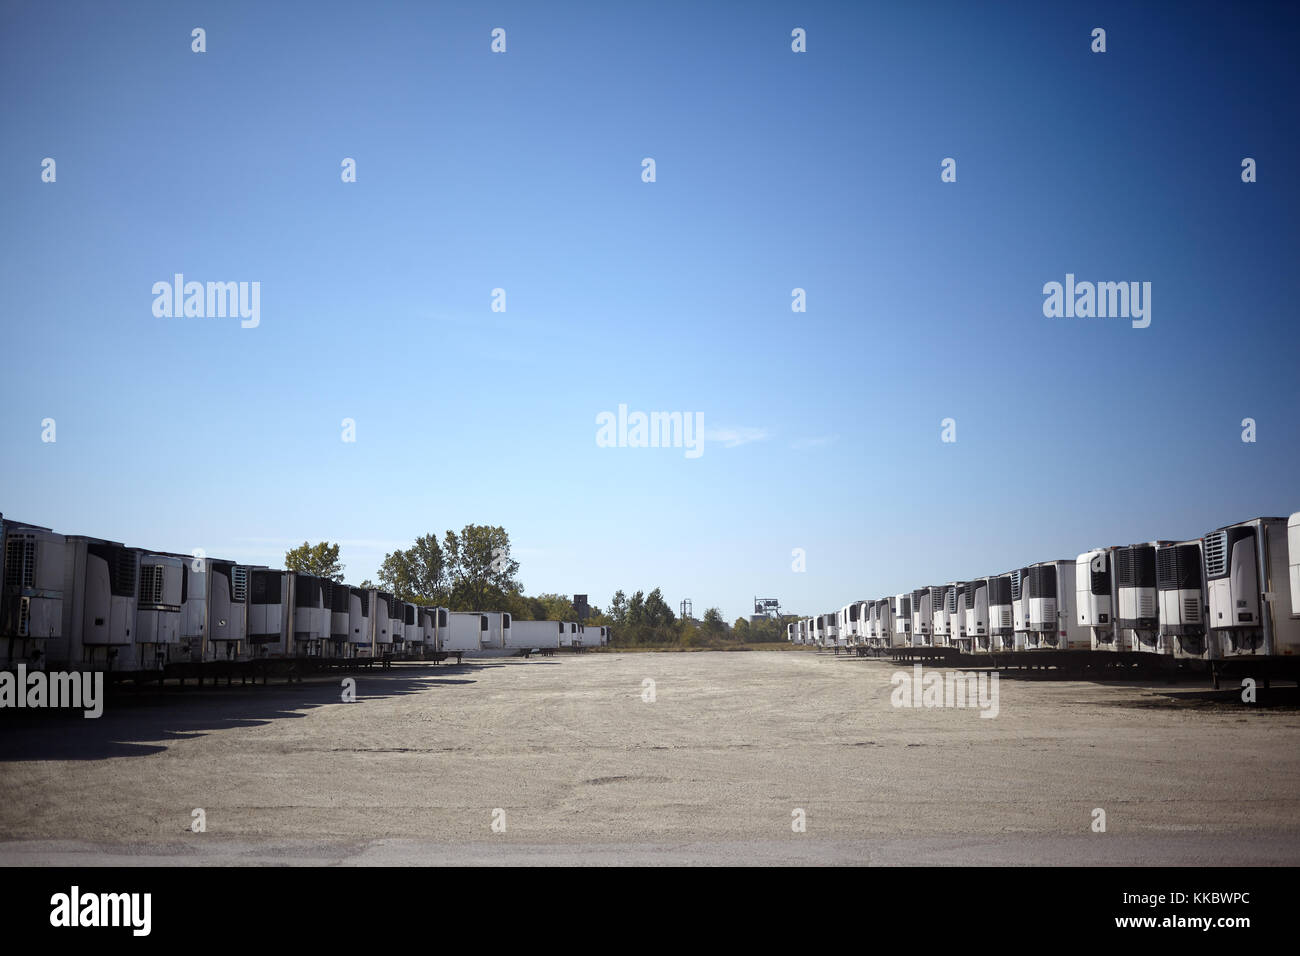 Vehicle park full of haulage trailers for freight parked in two long receding rows under a cloudless blue sky - Stock Image